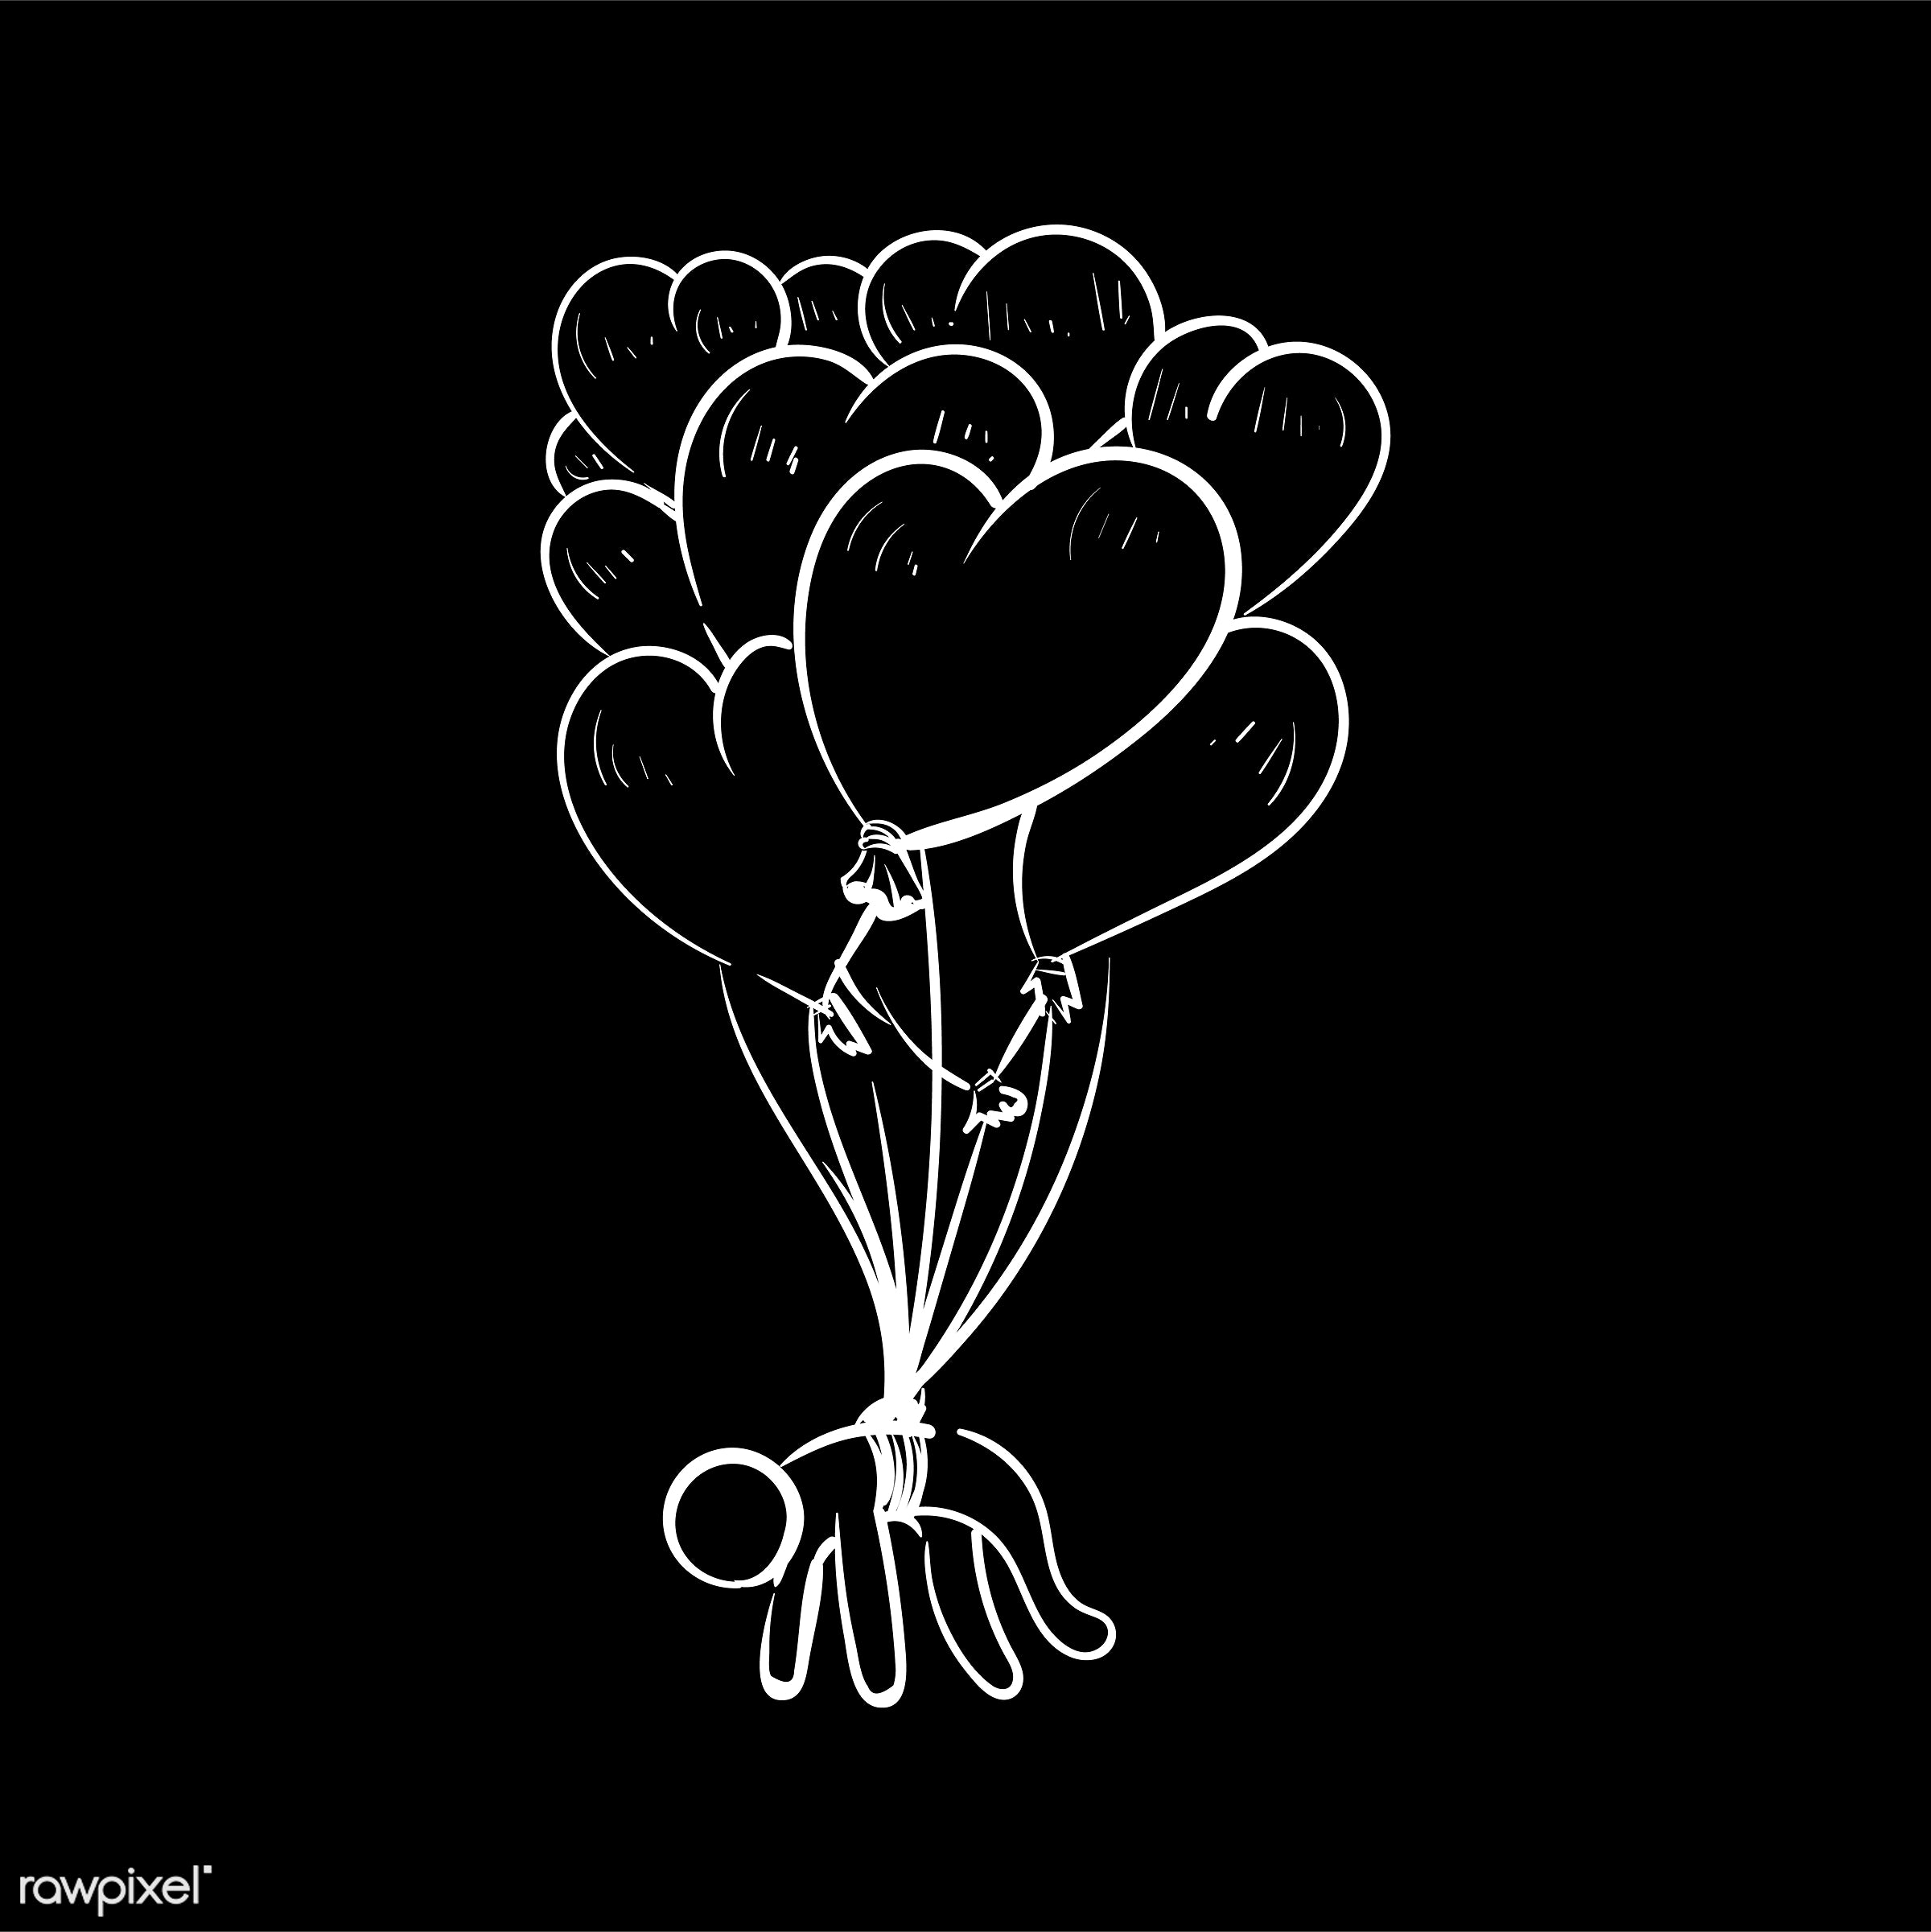 Hand drawing illustration of love concept - art, artwork, balloons, cares, collection, couple, creative, creativity, design...